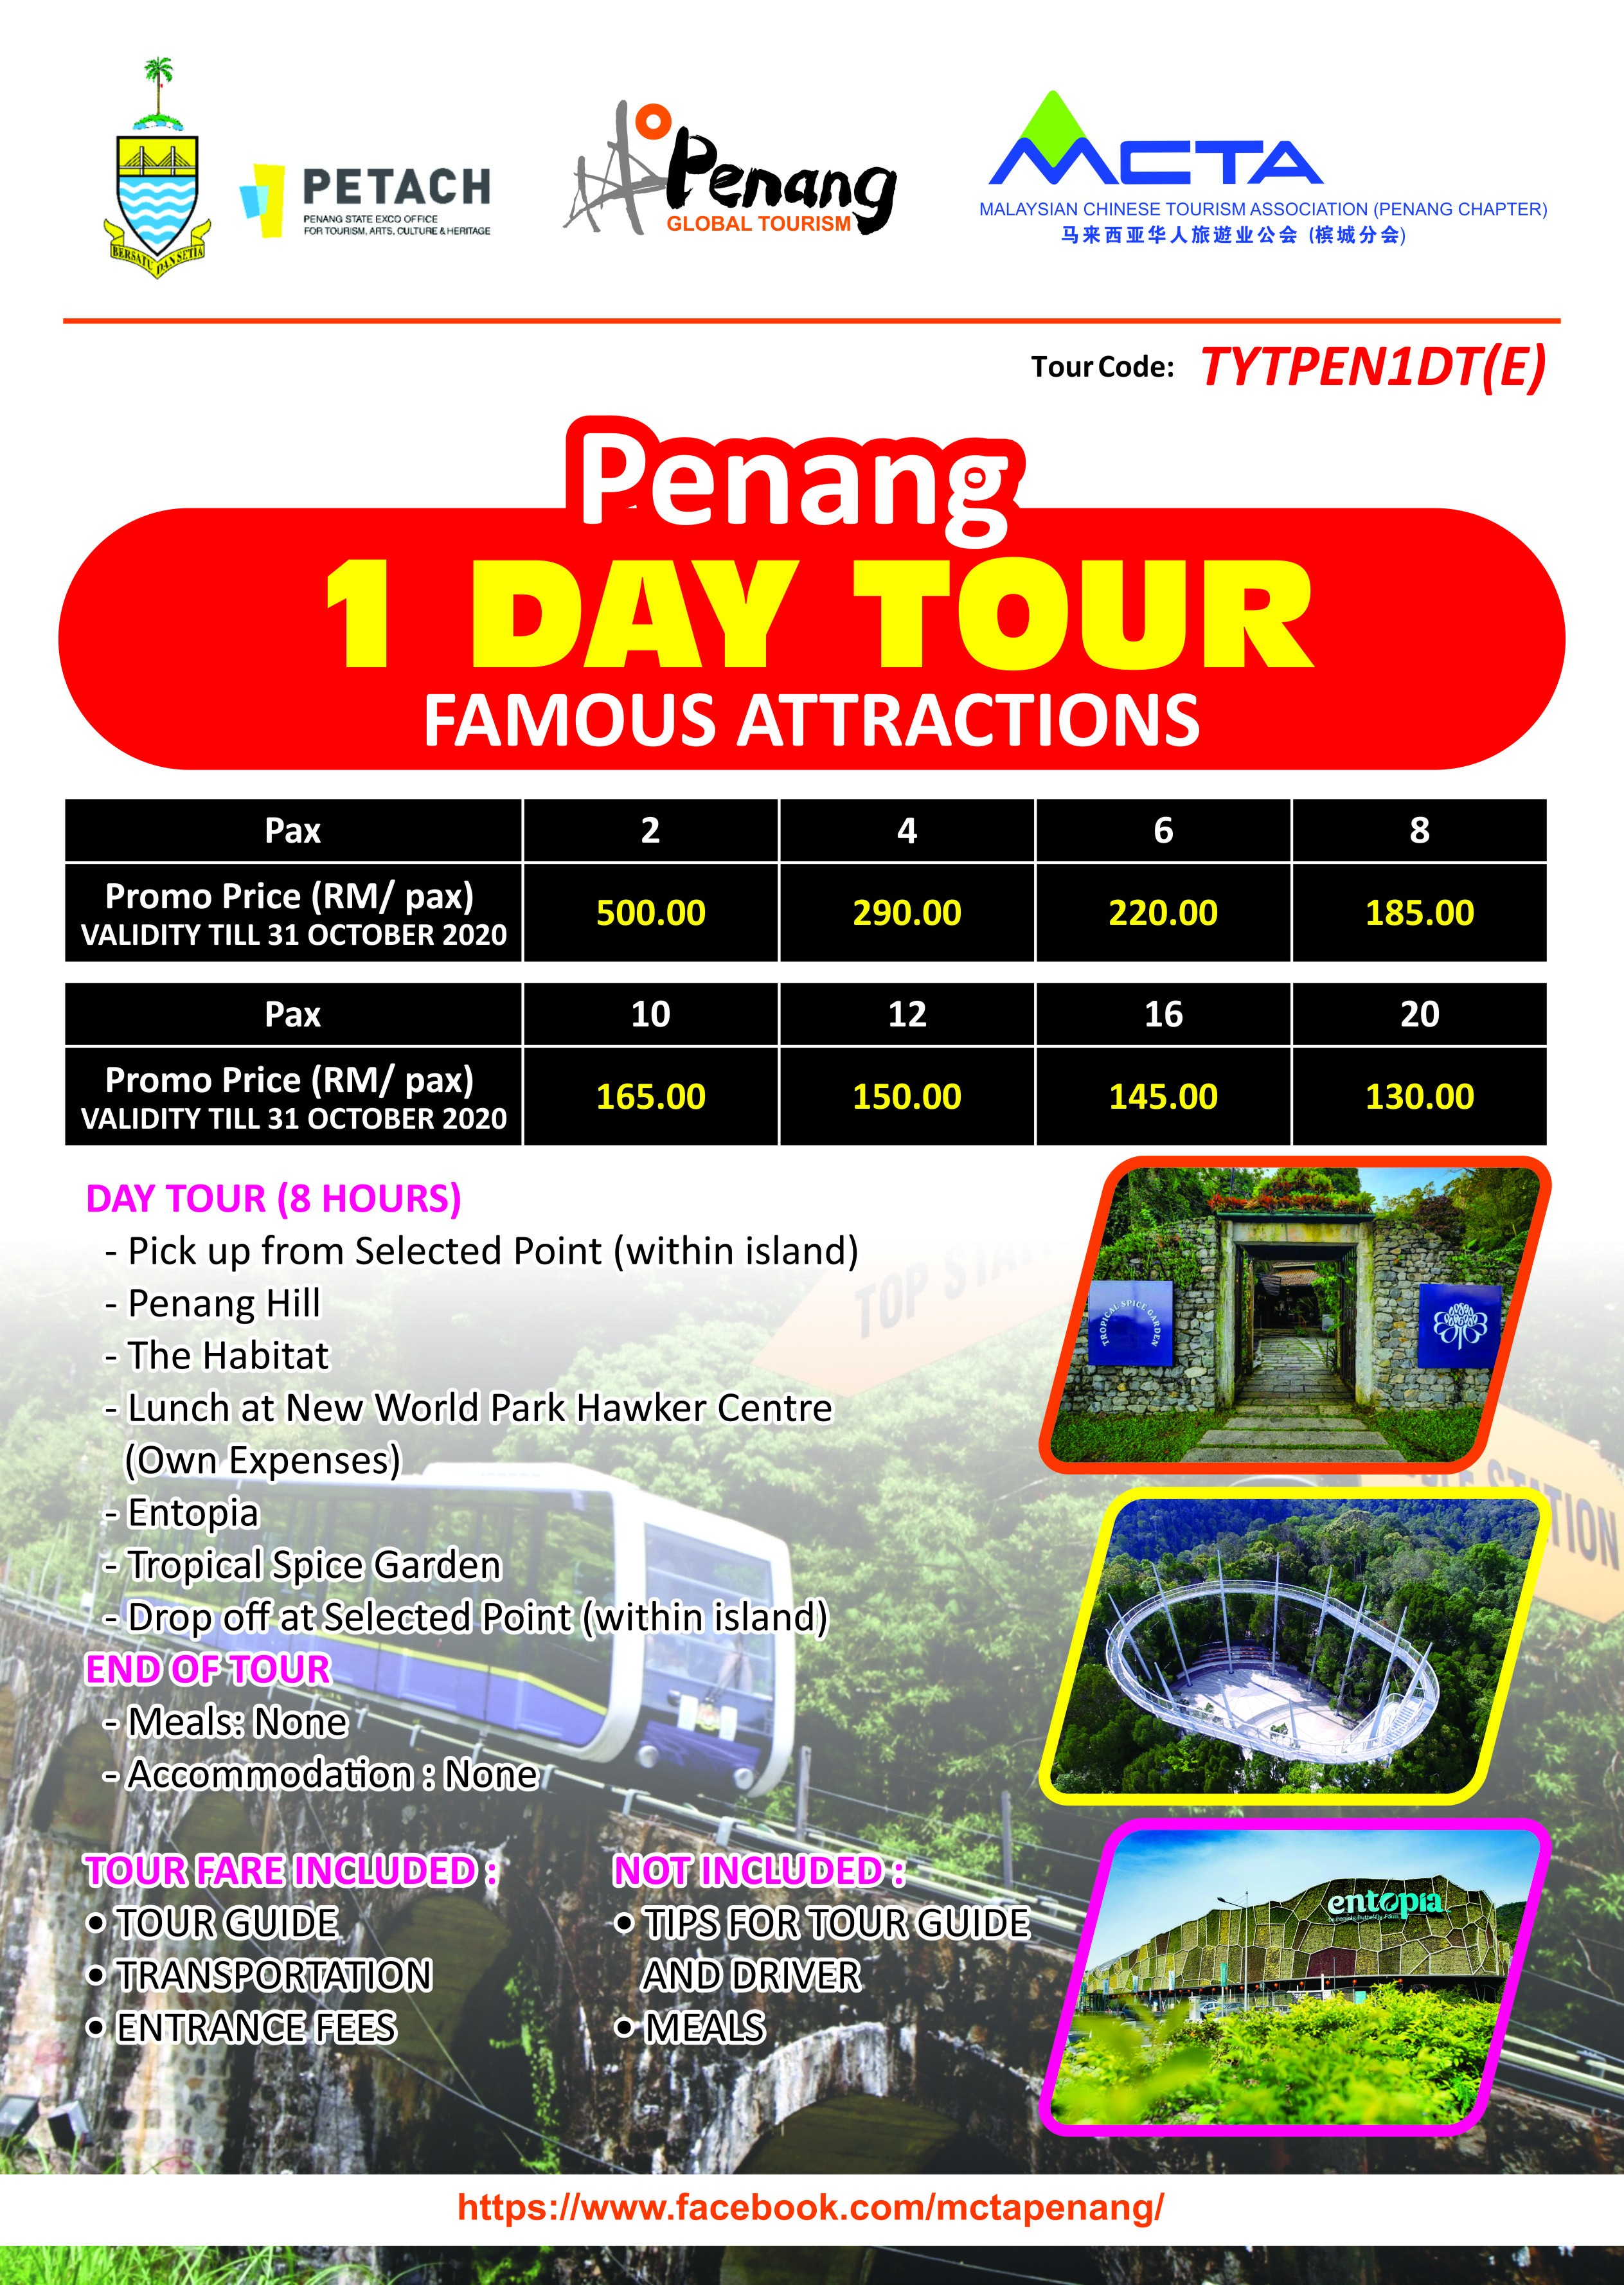 Penang 1 Day Tour - Famous Attractions